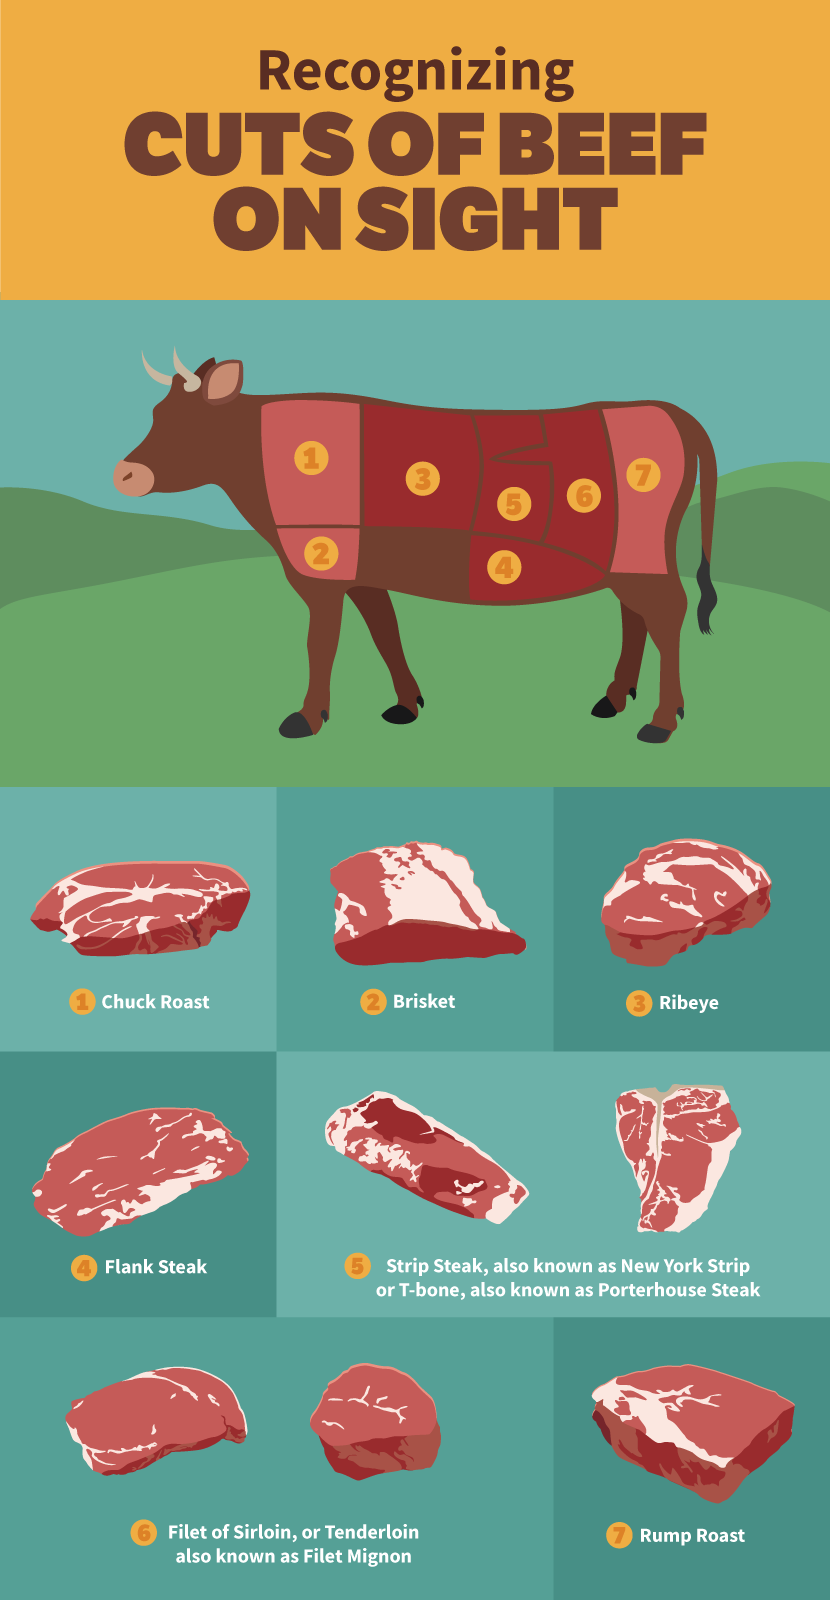 Marbled Pork Meat Vs Marbled Beef Primo Natural Pork